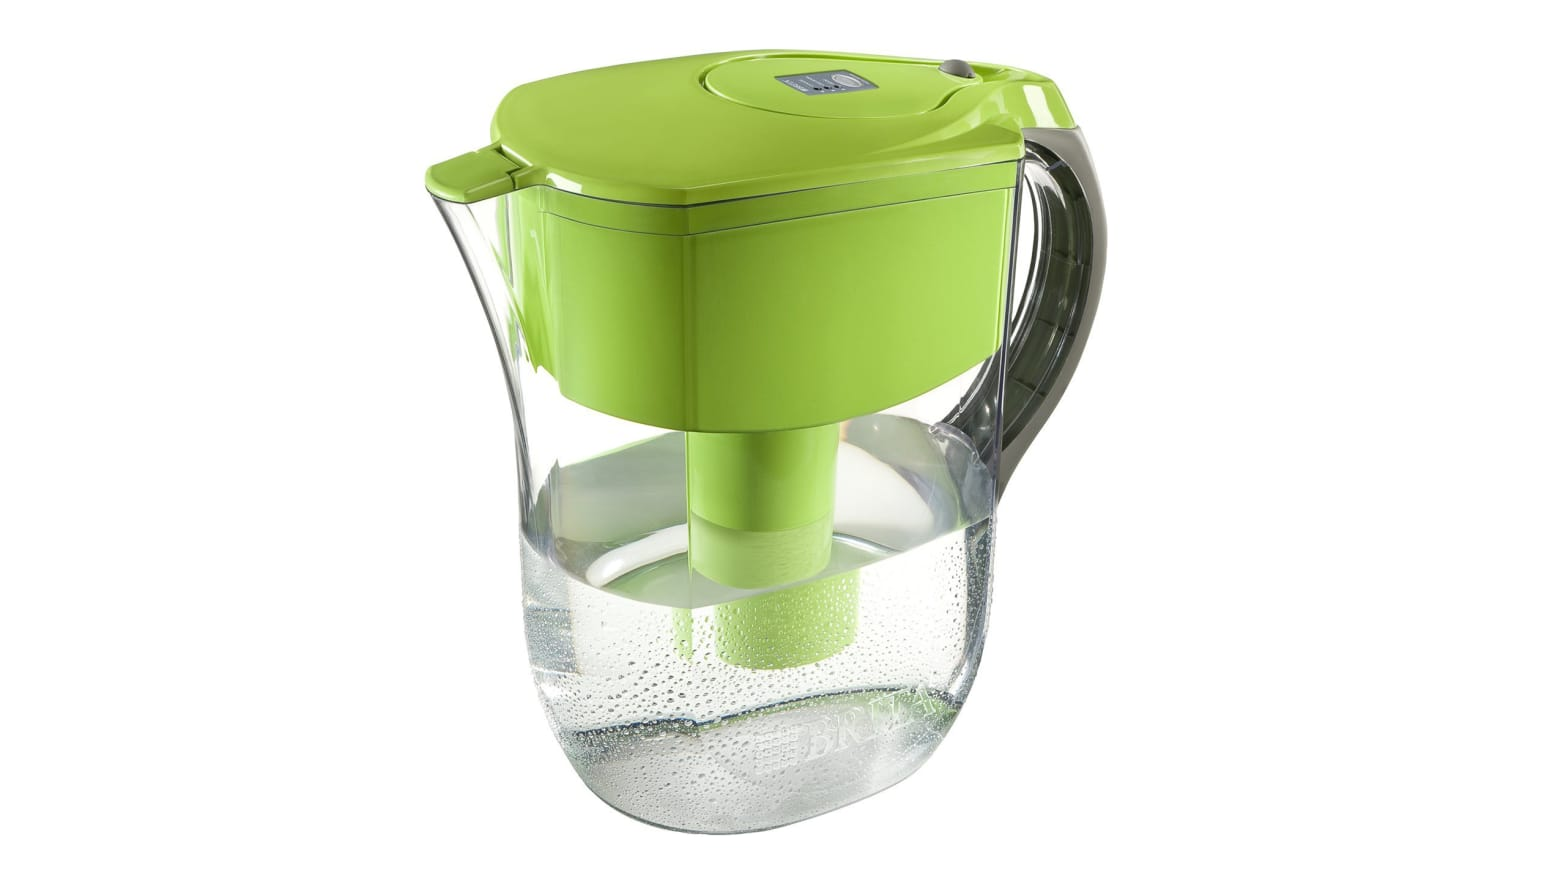 Brita Makes the Best All-Around Water Pitchers That Are Affordable, Dependable, and Functional